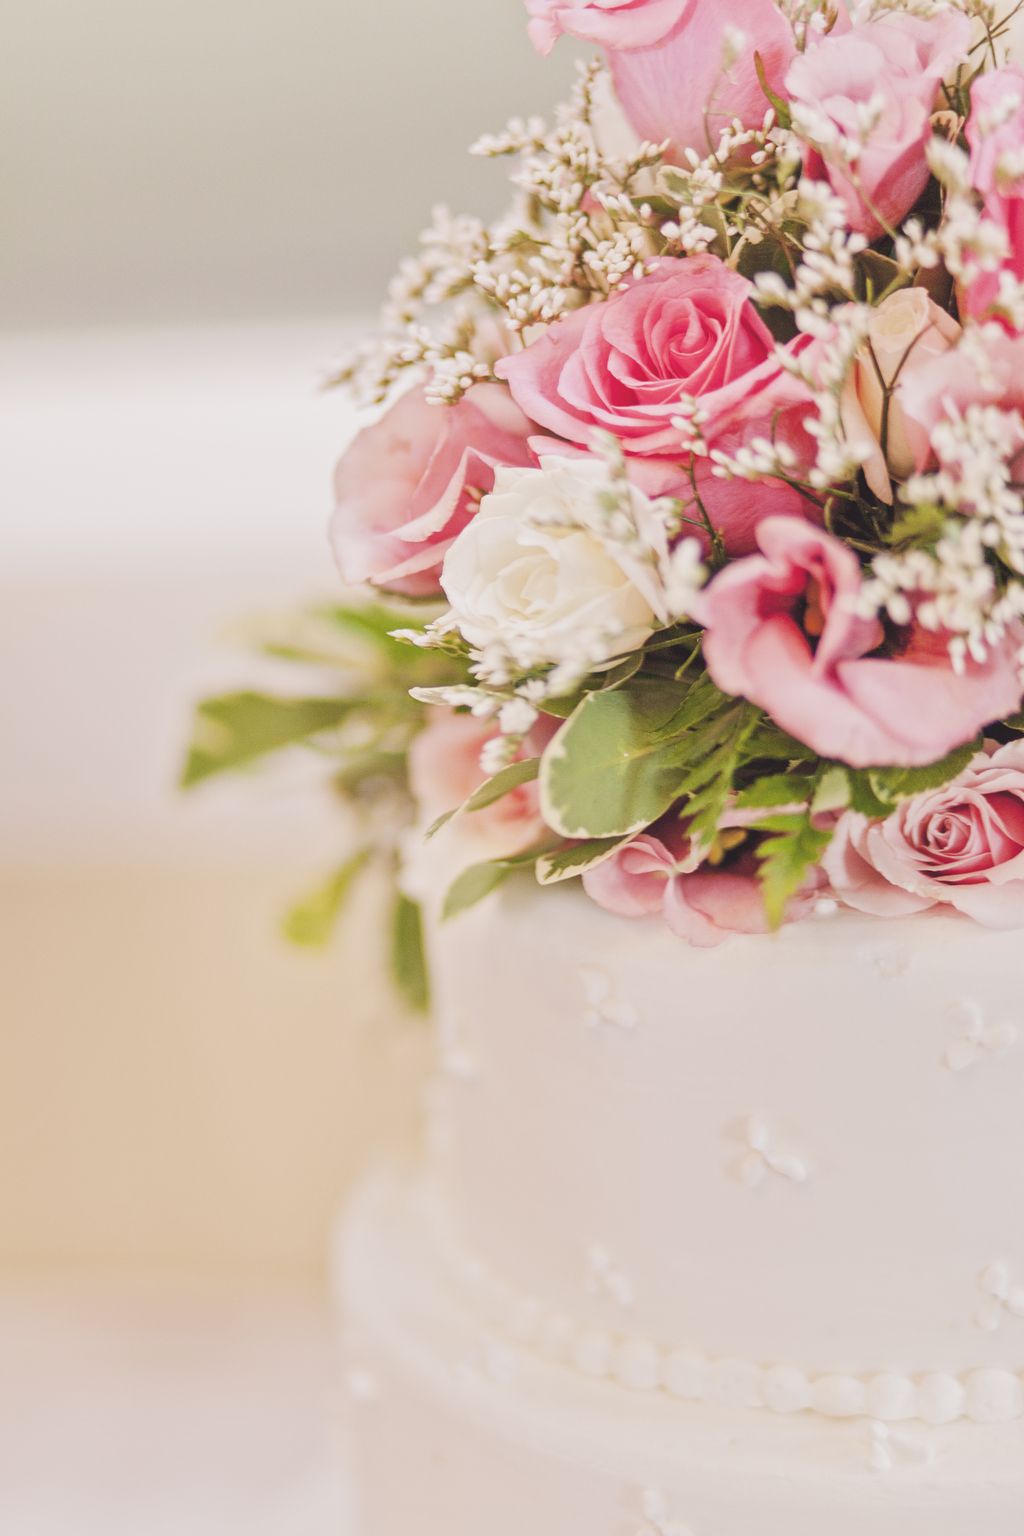 Romantic-classic-wedding-cake-with-pink-roses-topper.full